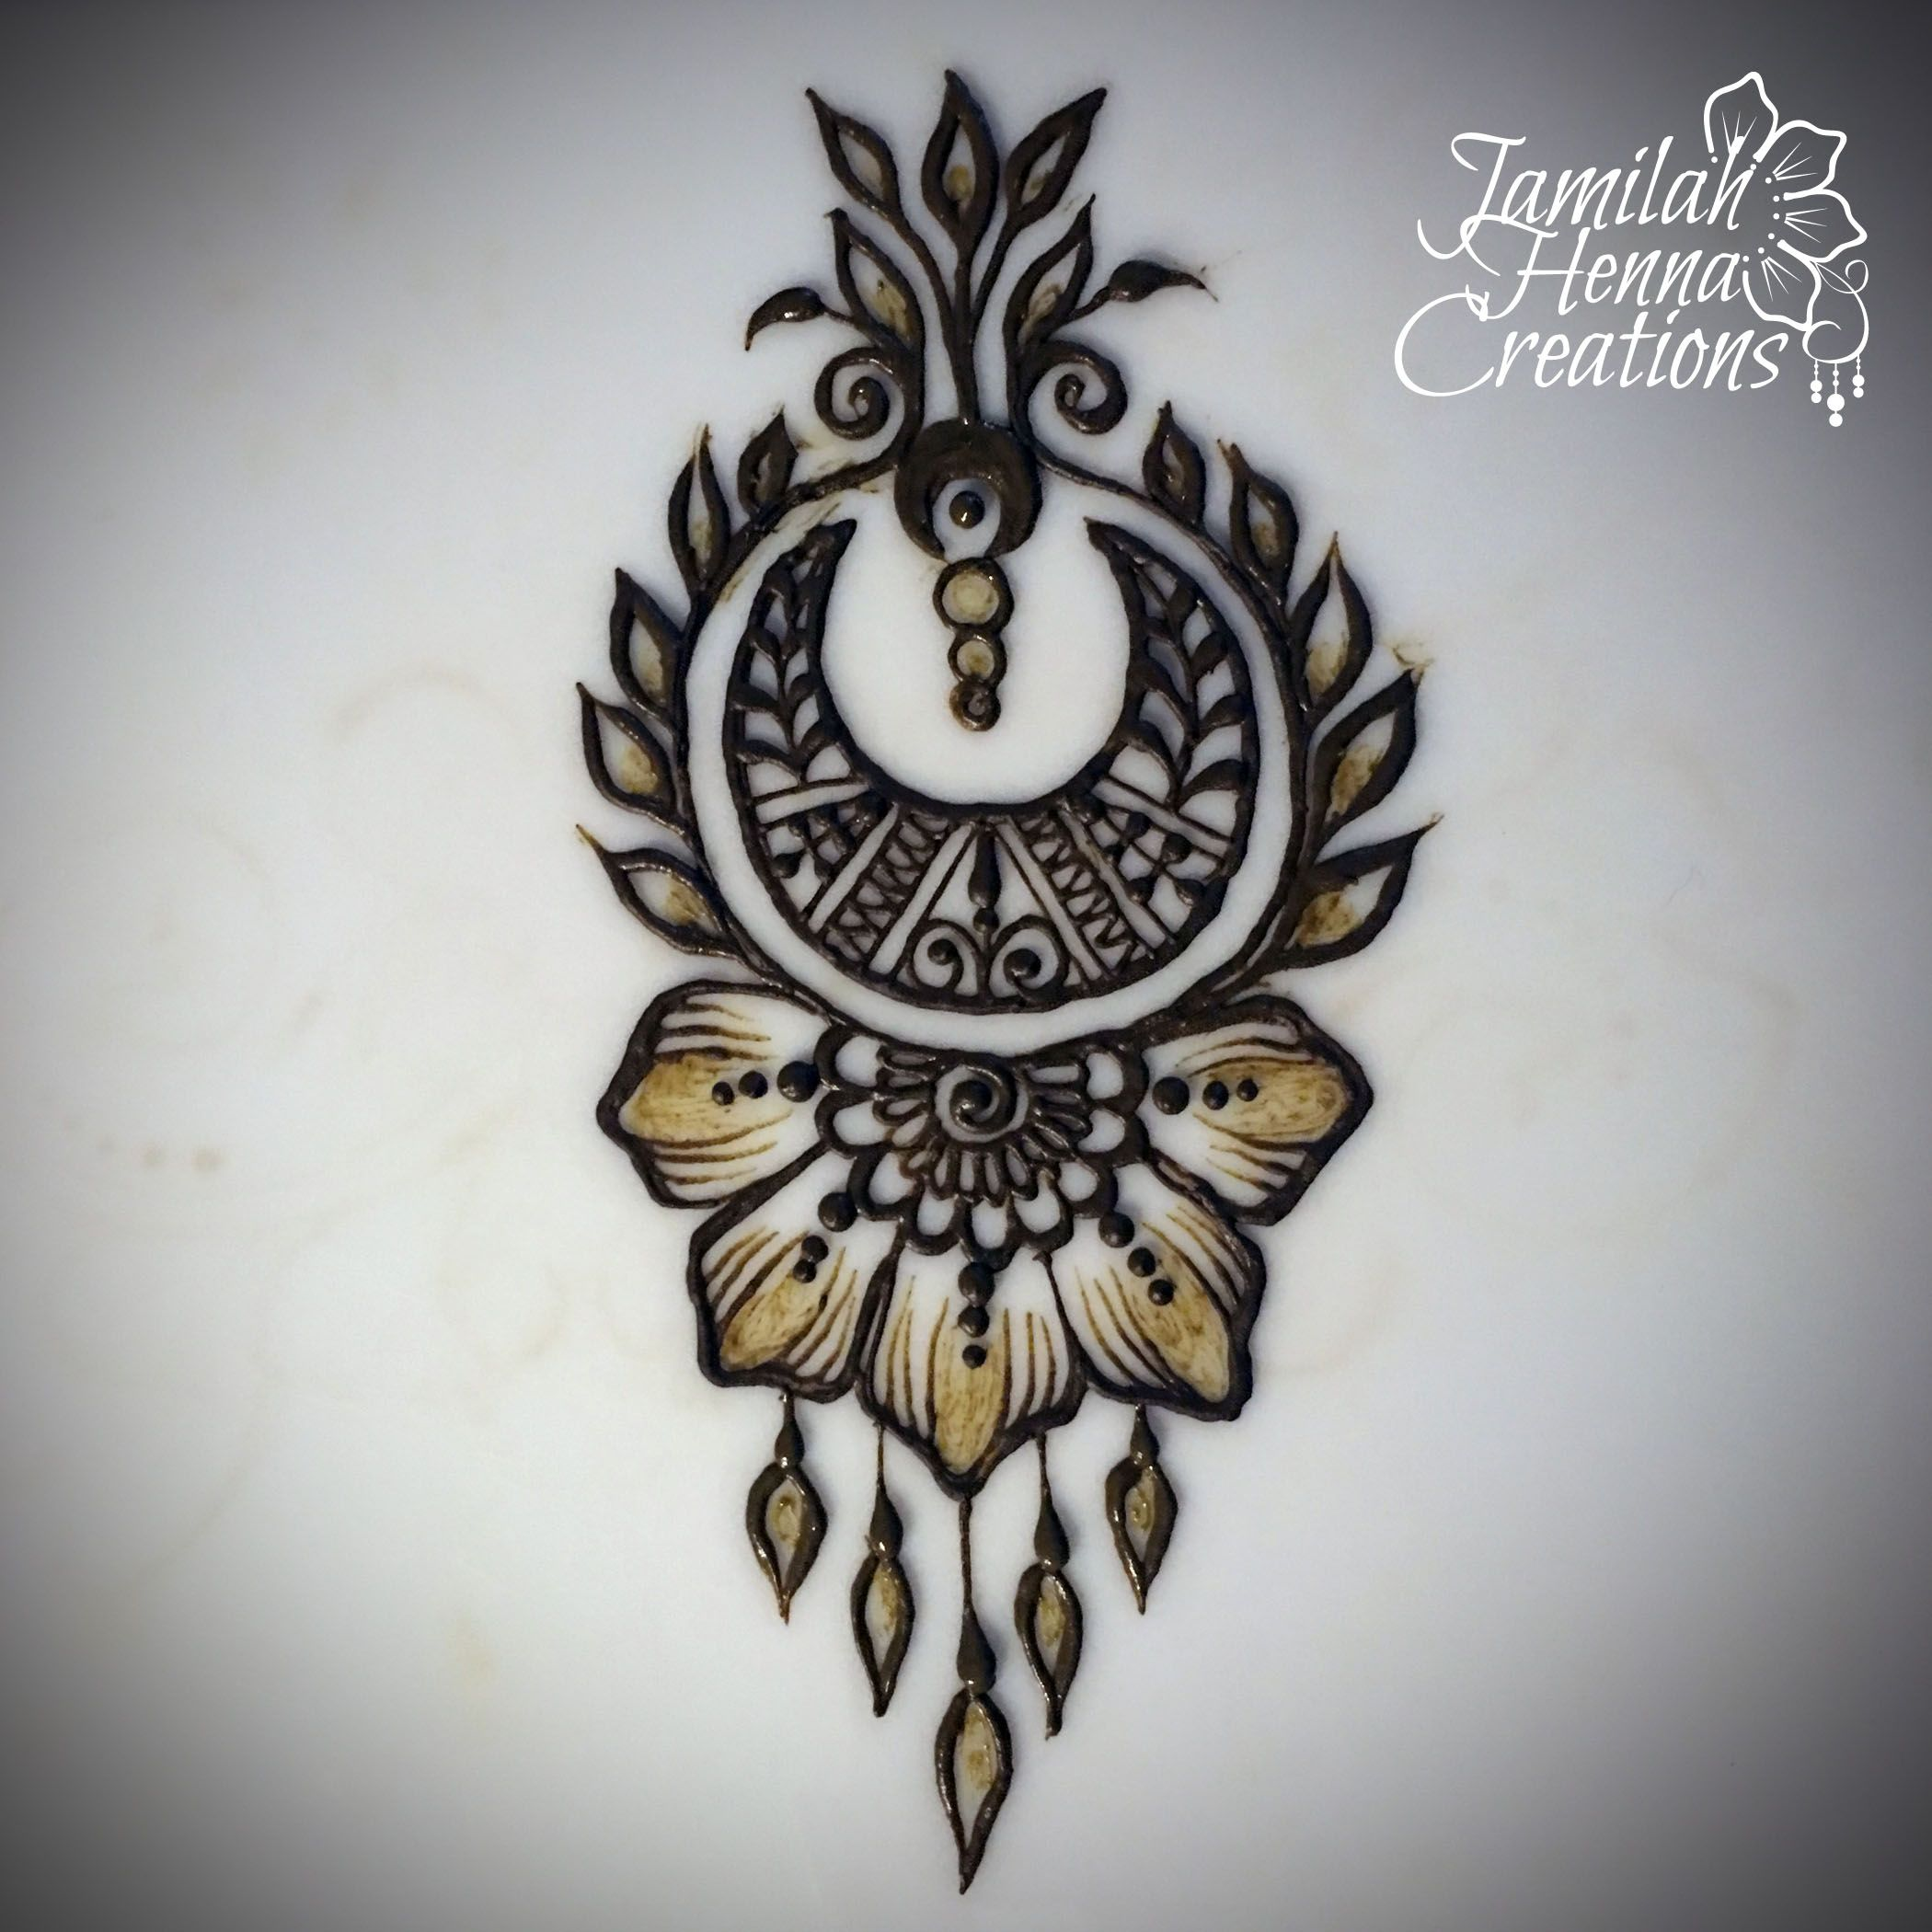 Moroccan Moon Flower Henna Www Jamilahhennacreations Com Henna